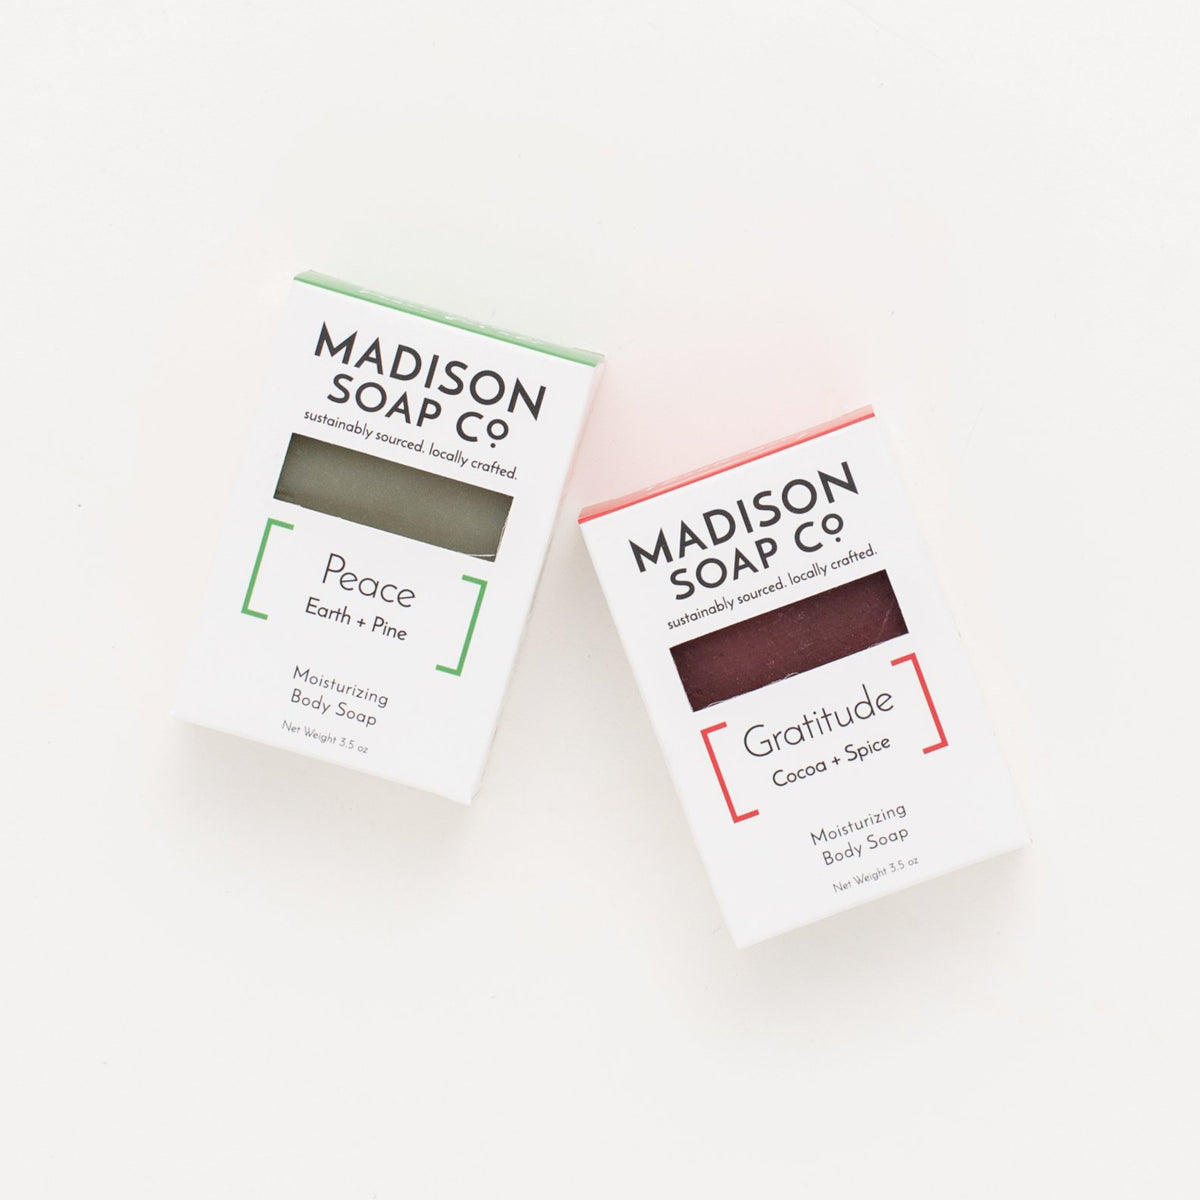 """Holiday Soap"" Gift Set Gift Set by Madison Soap Company from Madison Soap Company"